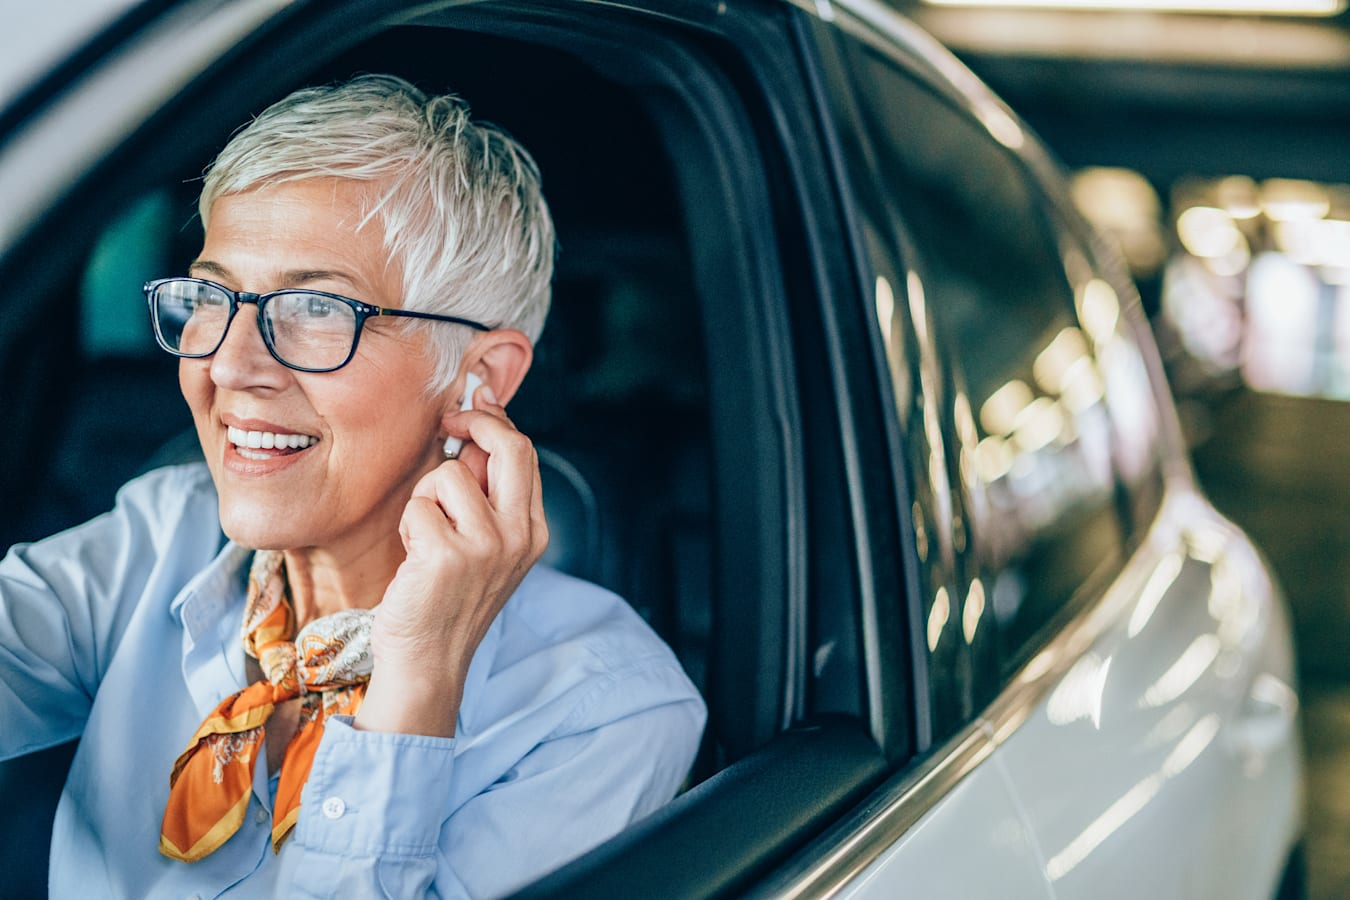 is using airpods in a car illegal